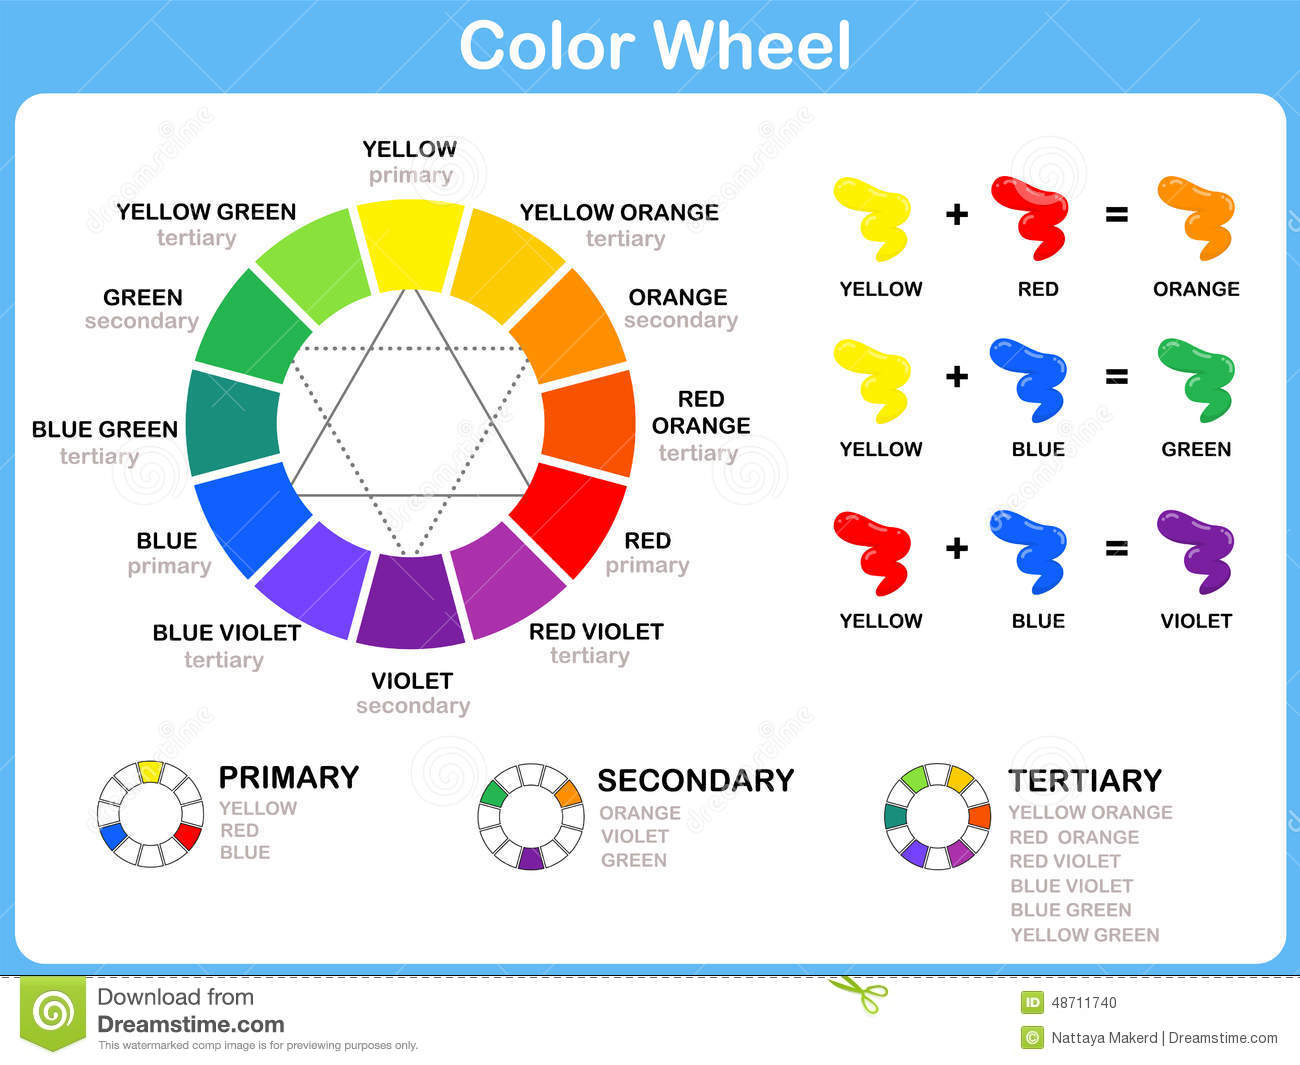 Worksheets Color Theory Worksheet color theory lessons tes teach wheel worksheet red blue yellow for kids stock